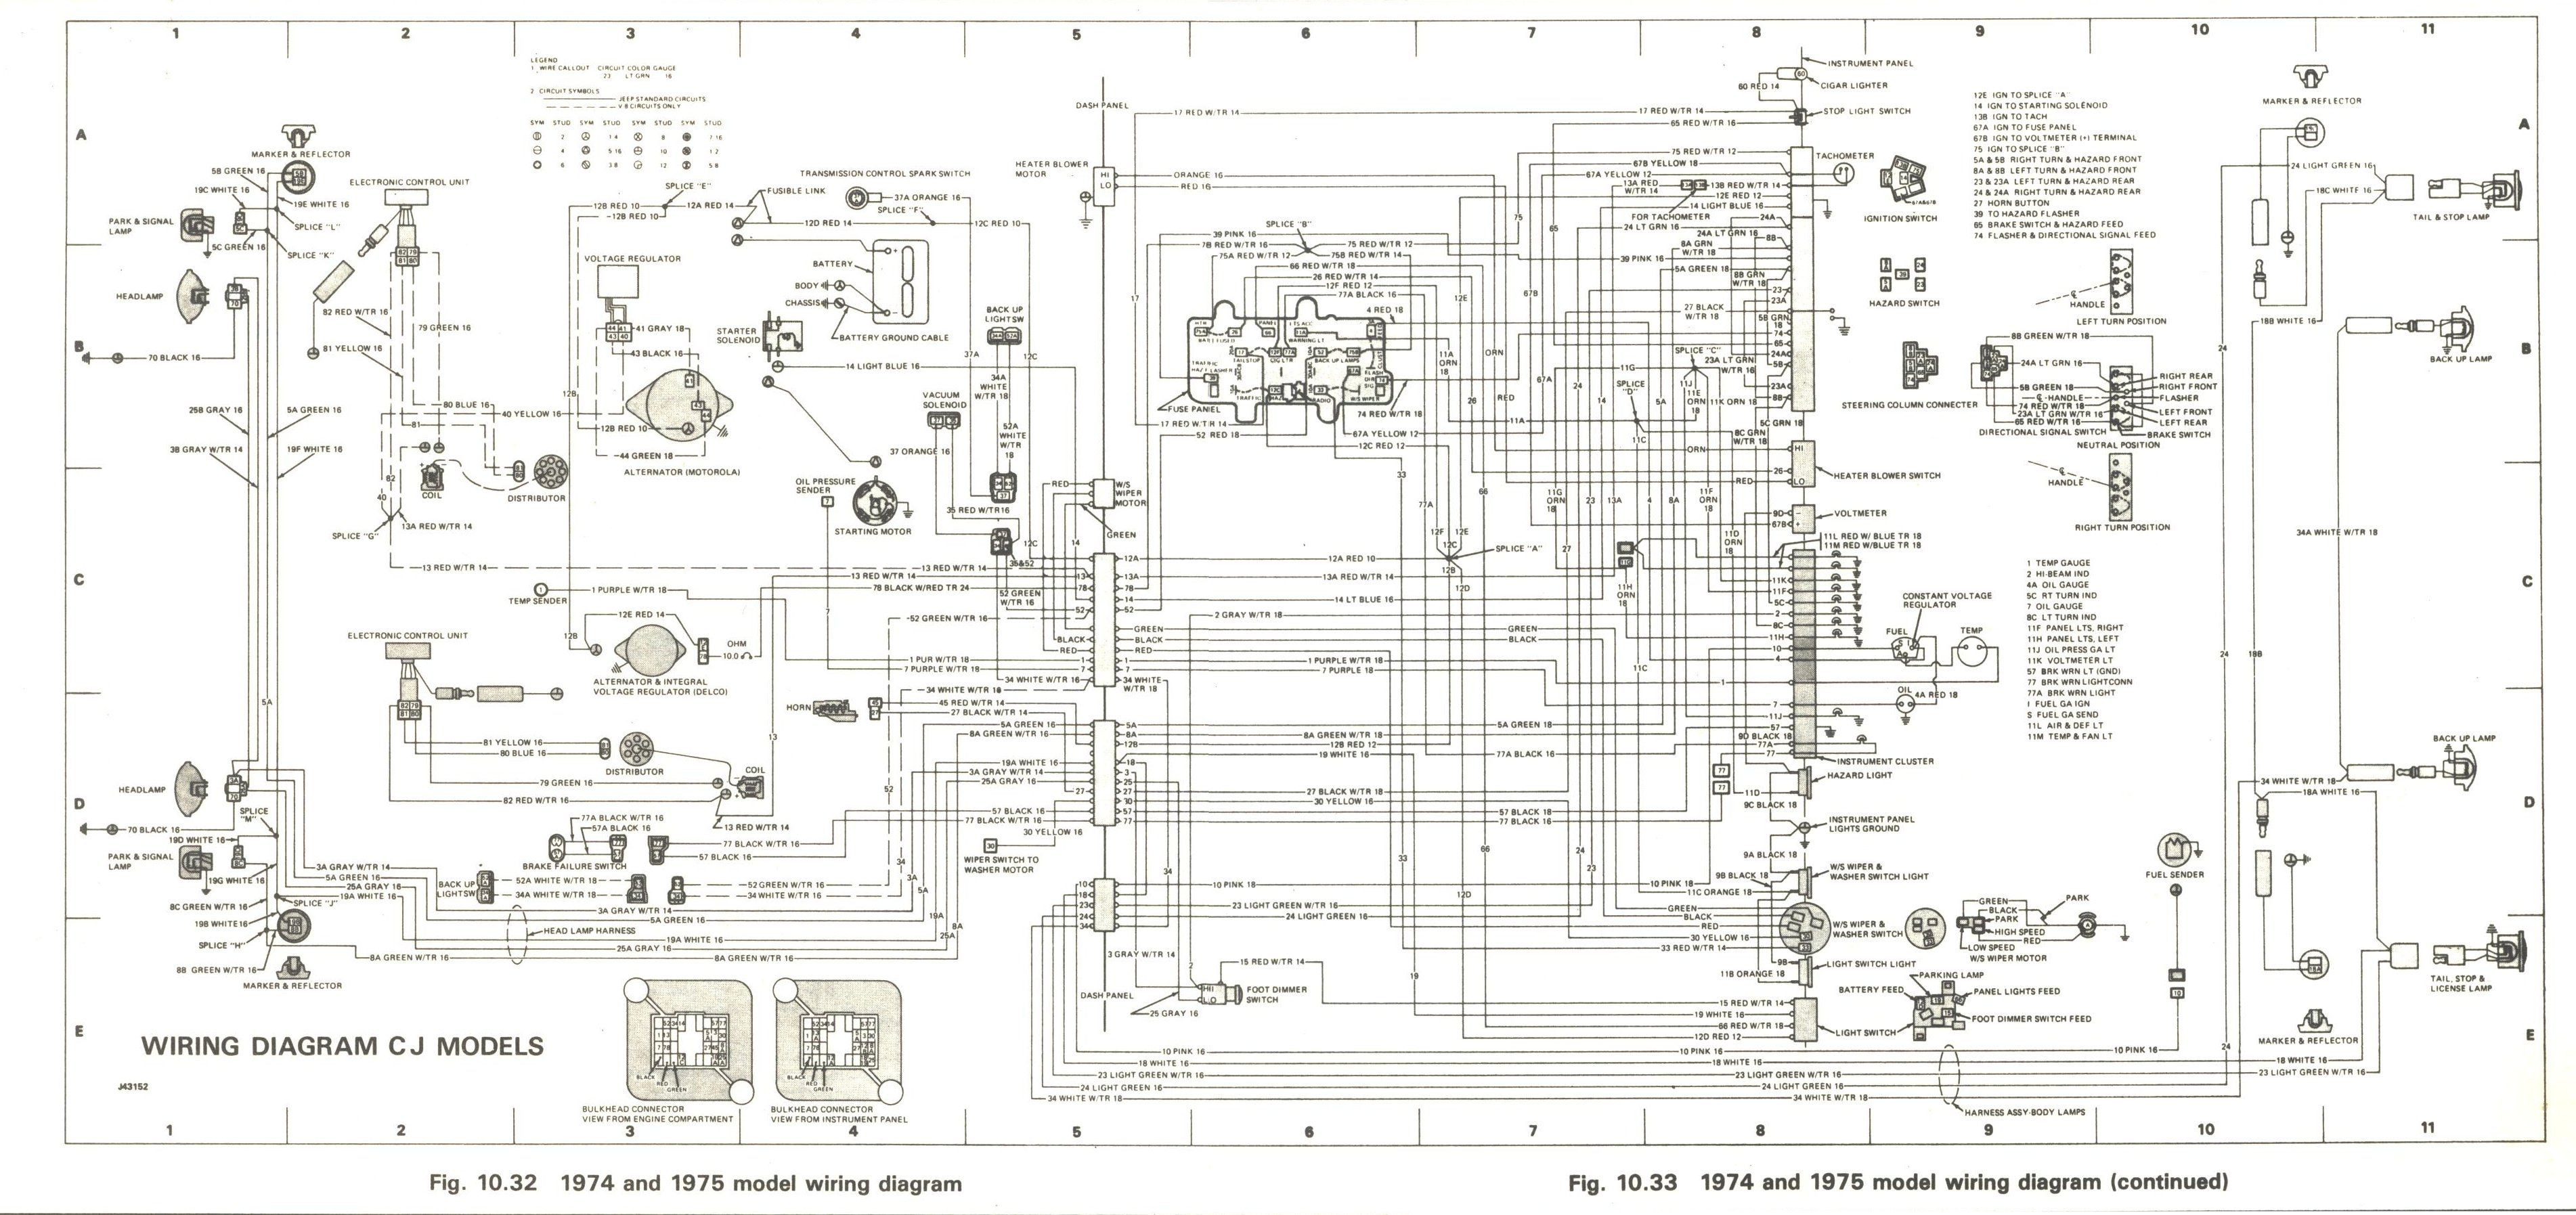 1980 Cj5 Wiring Diagram Furthermore Jeep Cj7 Tachometer Corvette Spark Plug Along With Steering Column